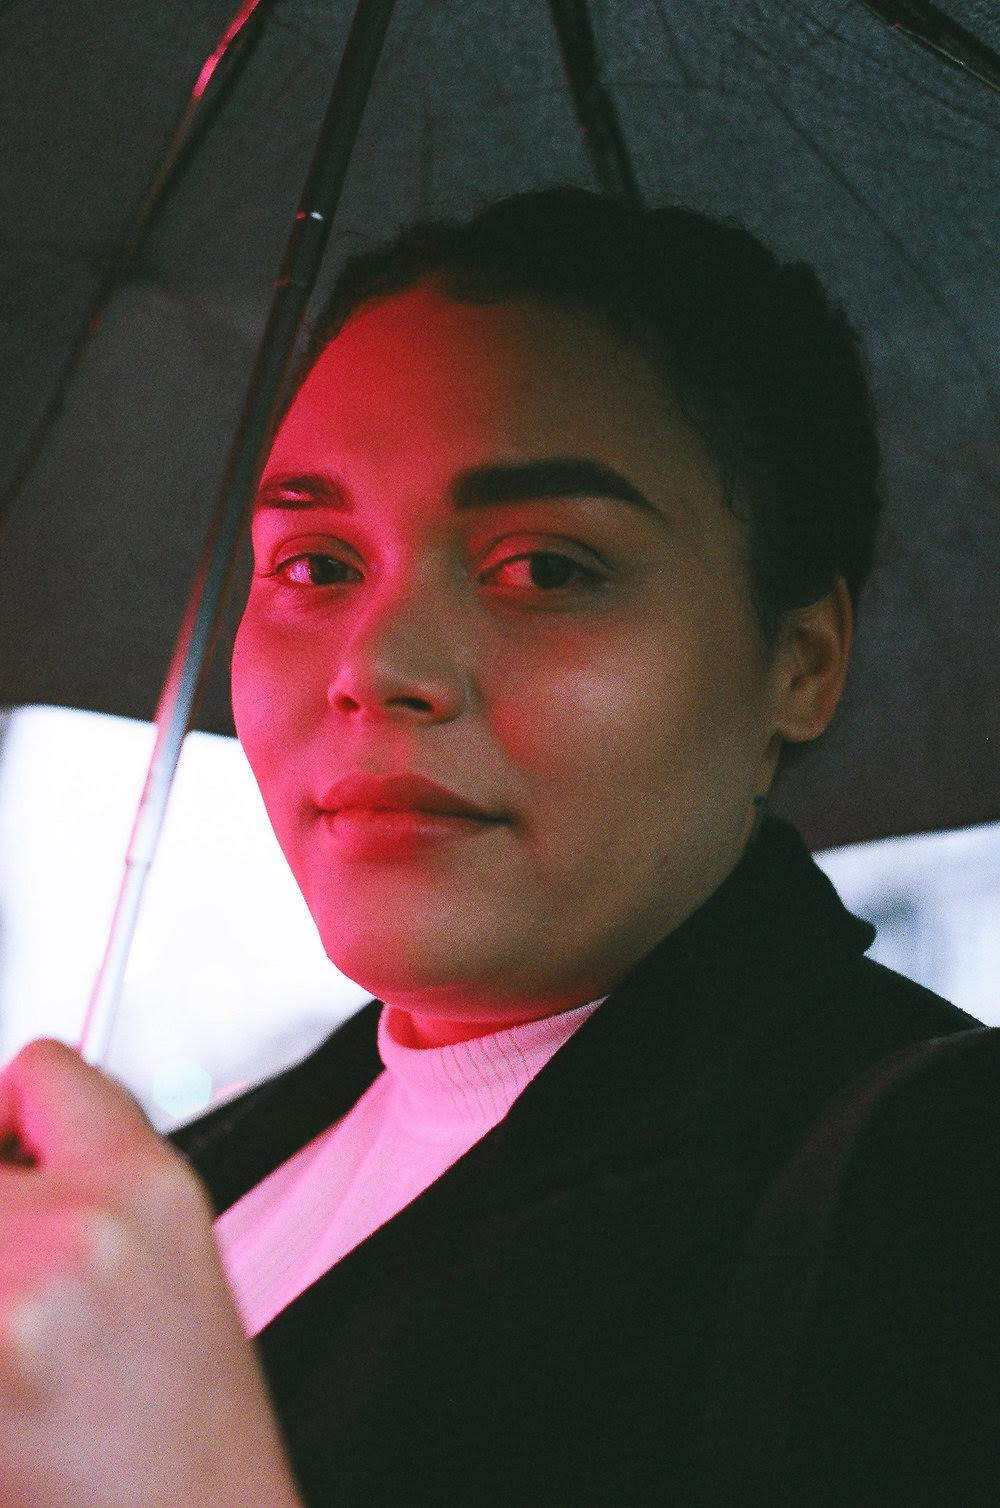 Photographed by Alyson Hardwick Image description: Sarah-Tai is a Black non-binary femme with olive-toned skin who wears a white turtleneck and a navy wool coat with their hair braided into a crown of loose two-strand twists. They stand in front of a neon light that casts a pinkish-red glow upon their face as they hold an umbrella and gaze at the camera.